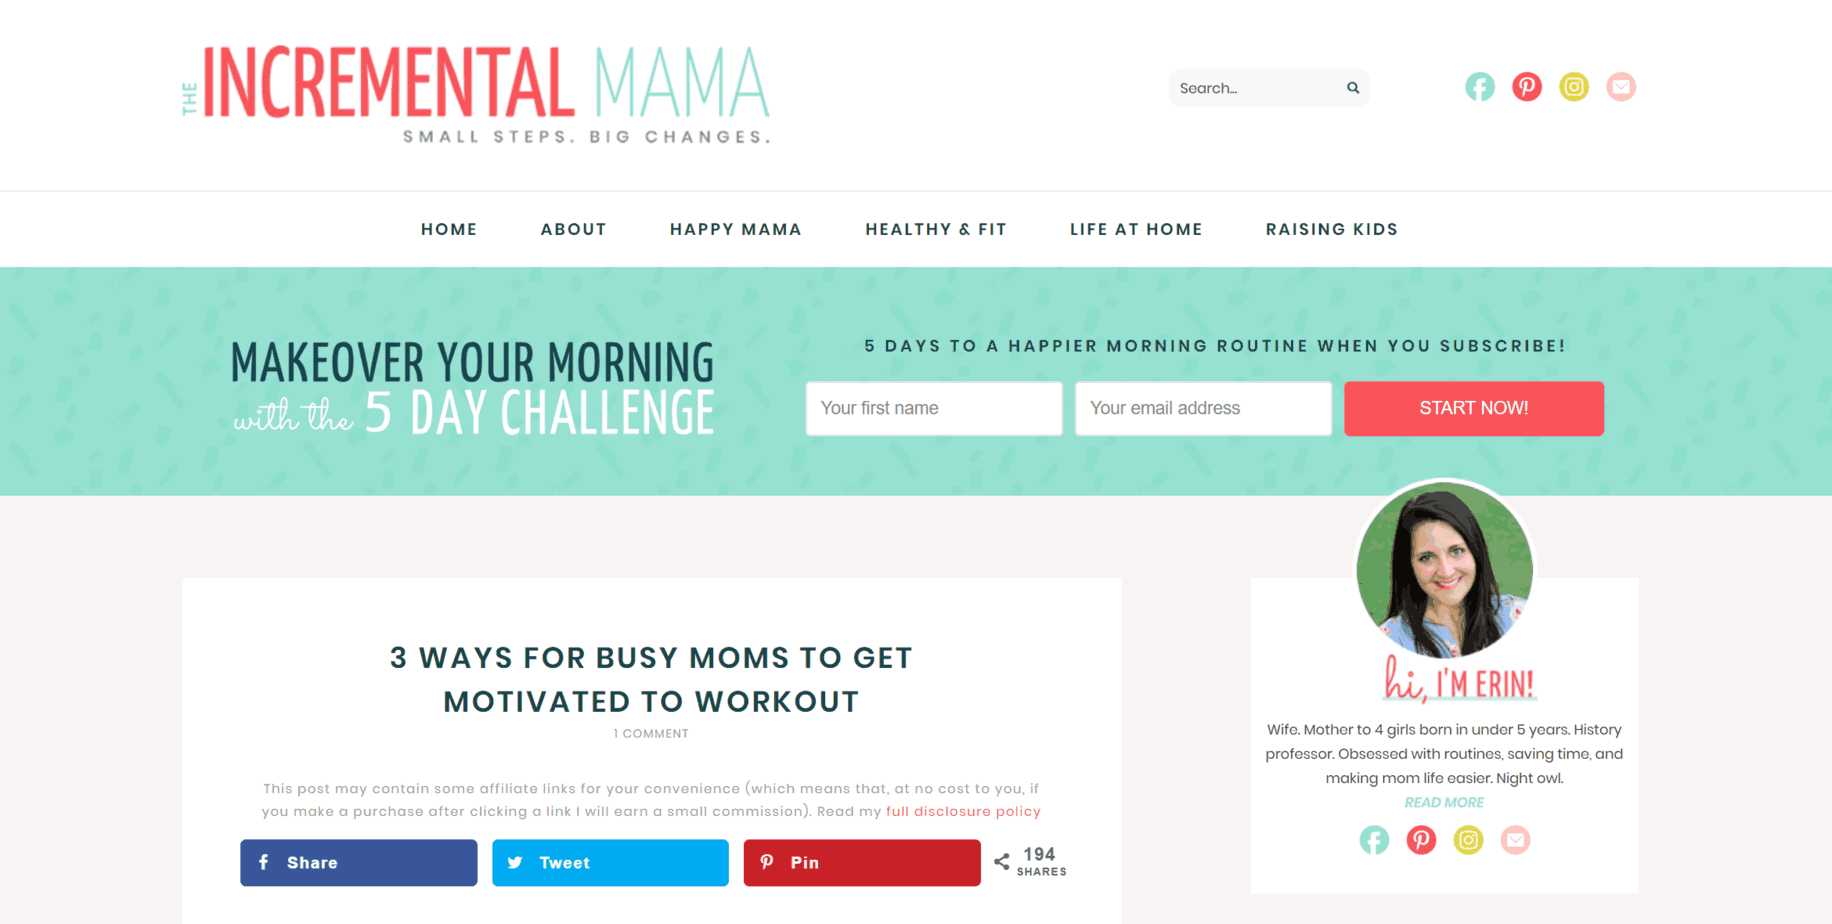 Market your Opt-in Freebie - The Incremental Mama - Above the Fold